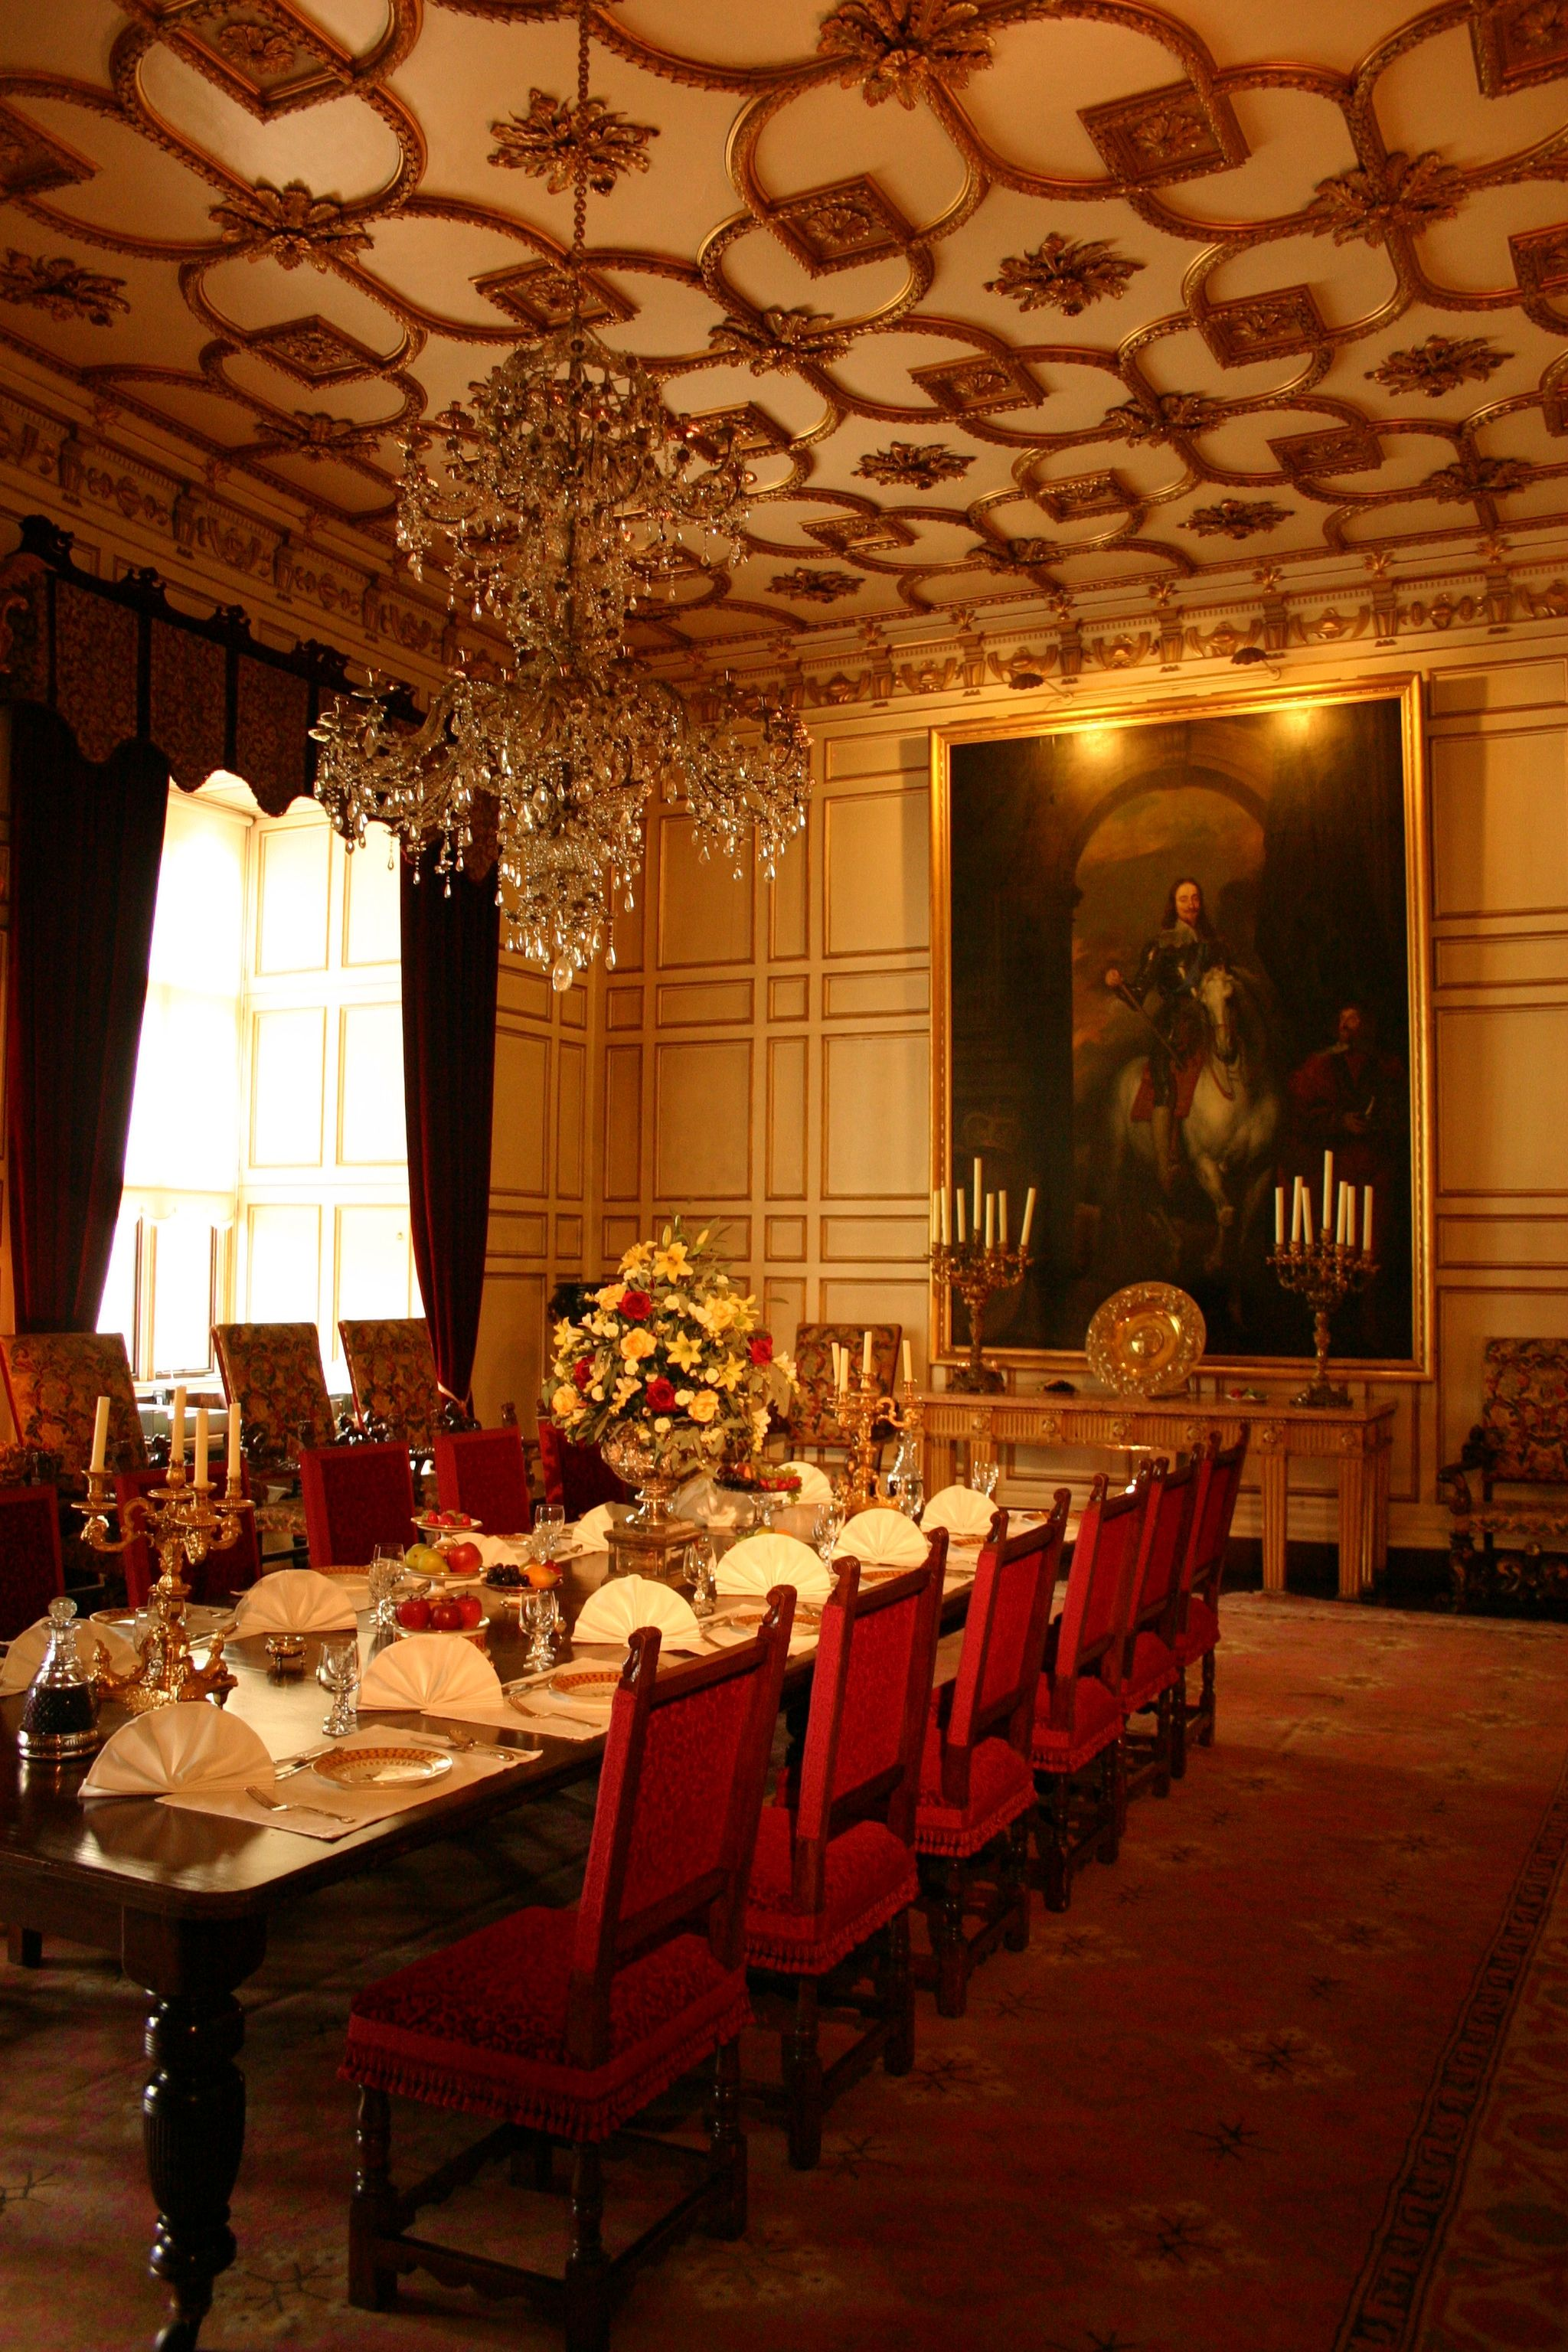 warwick castle interior. really cool for medieval theme dining